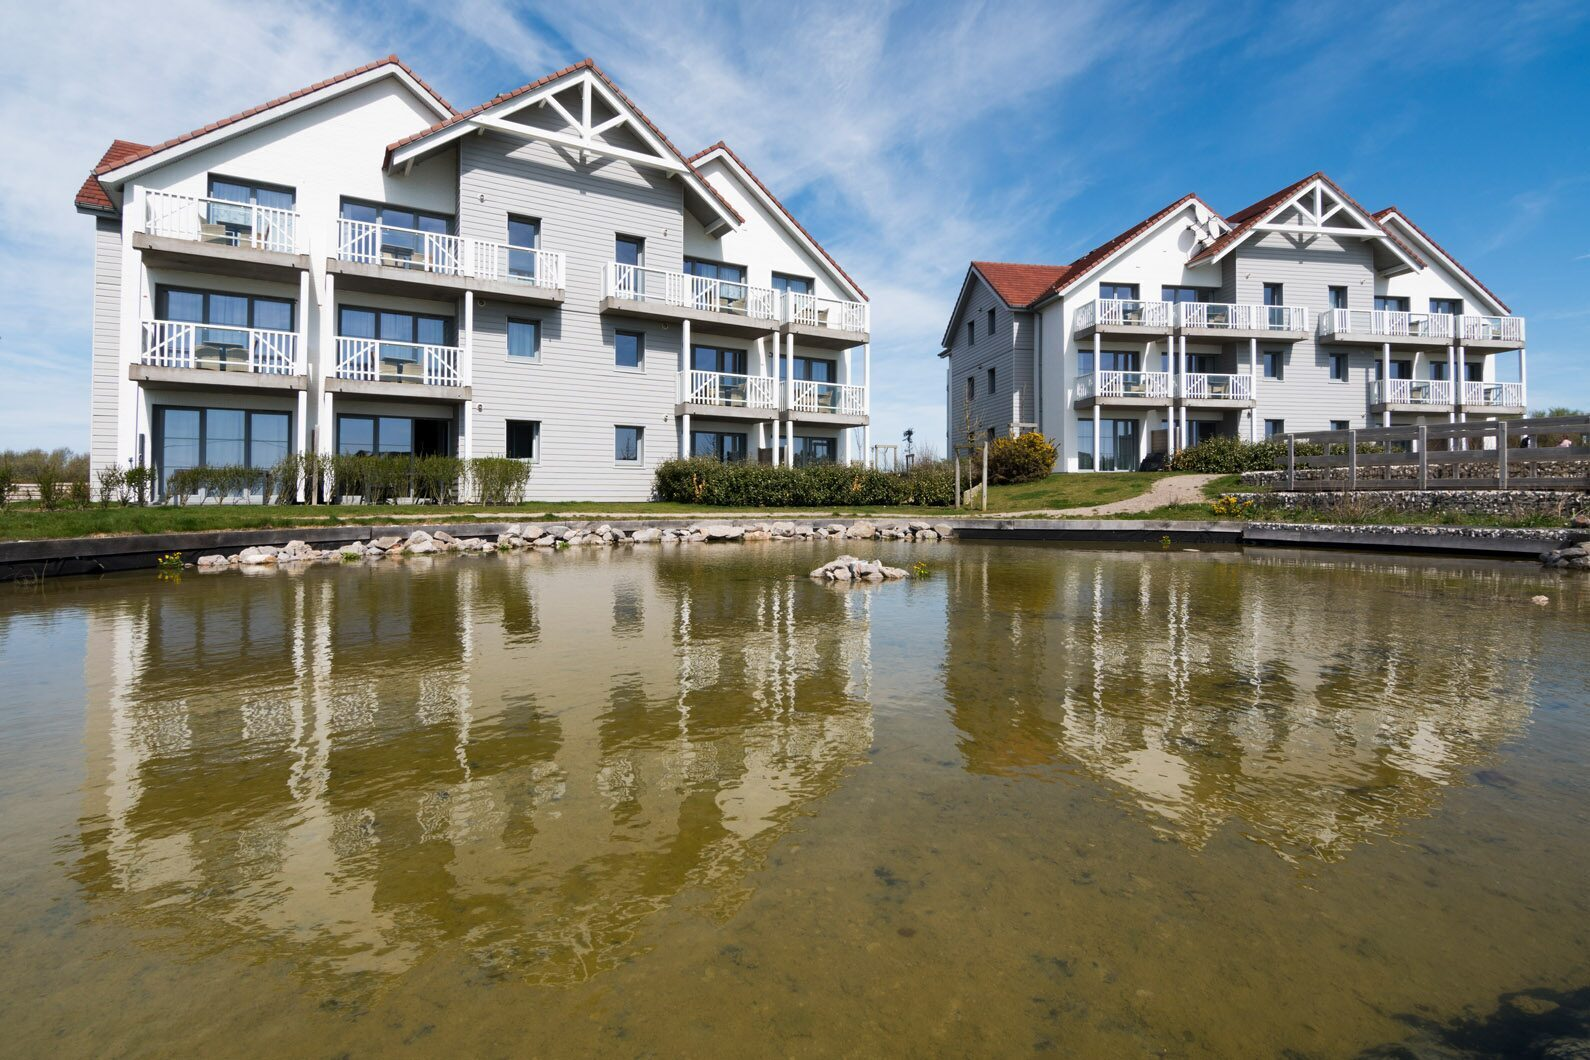 Appartments in Equihen-Plage